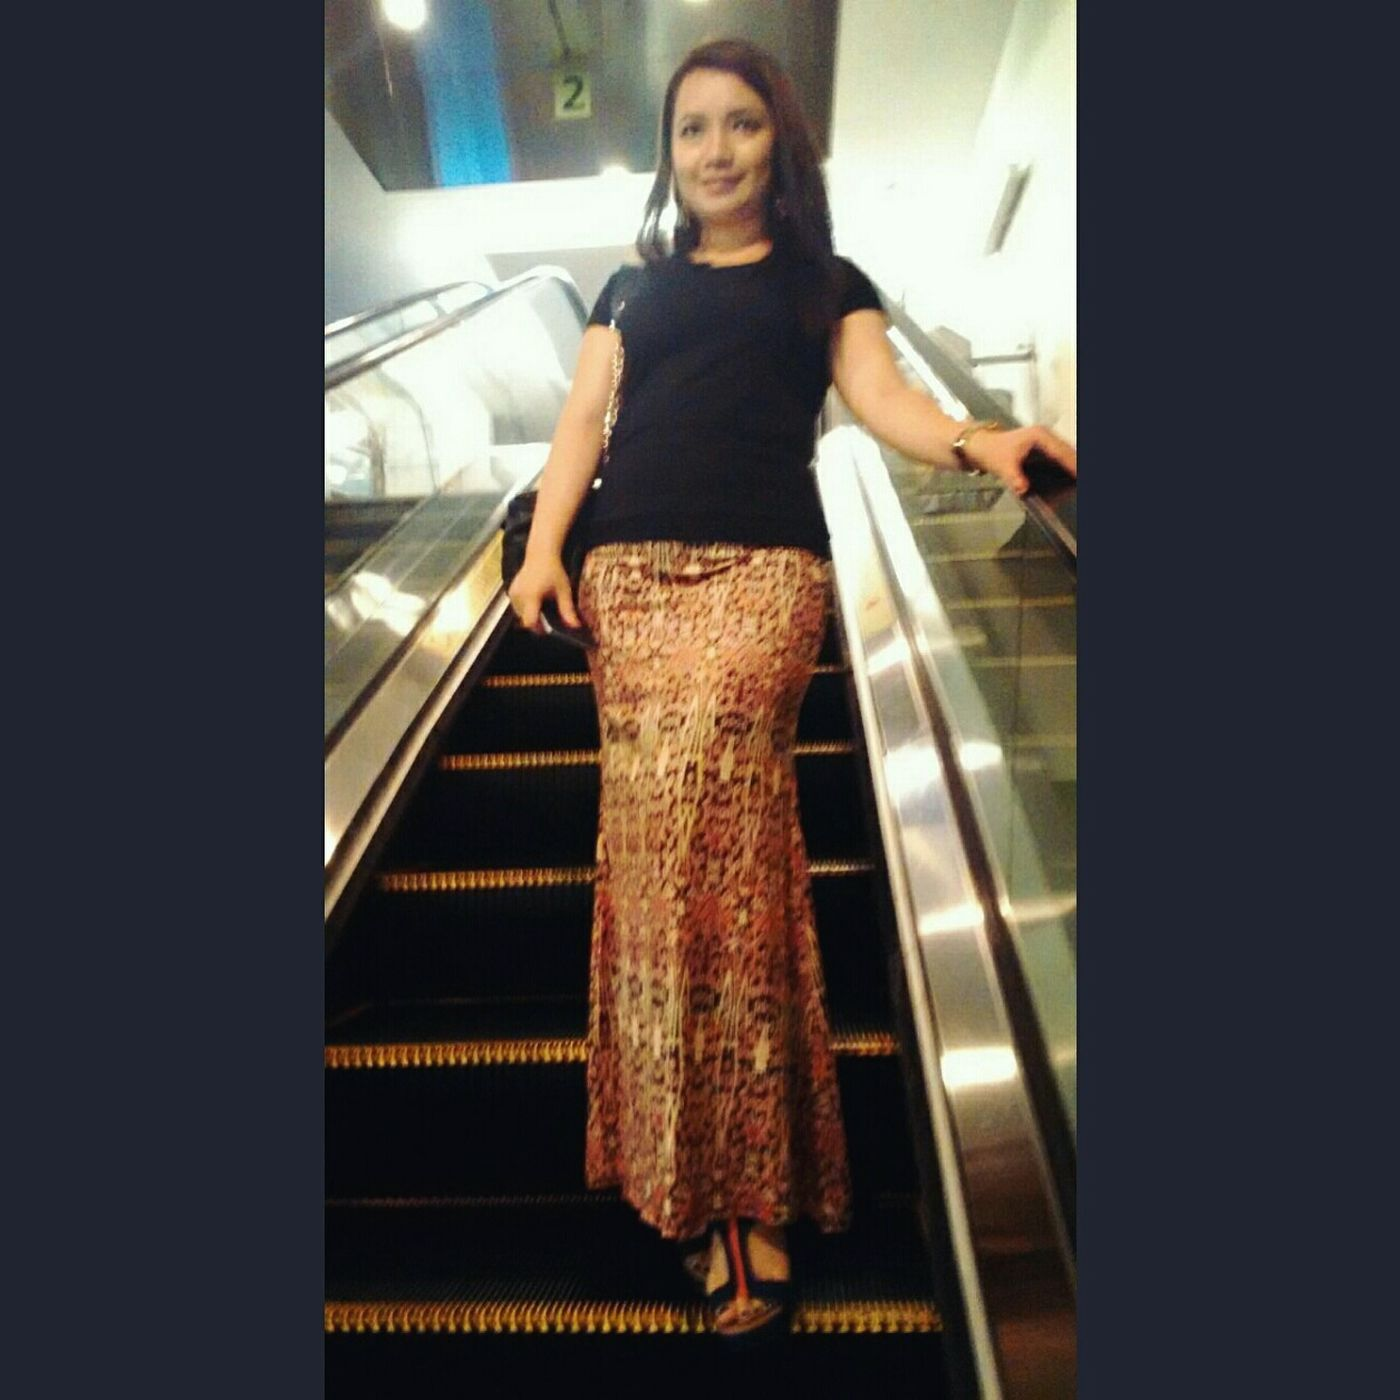 Heading to Majlis Sungkey organized by Ministry of Tourism Sarawak.I am wearing a maxi skirt motif of pua kumbu. Traditional motif by the Ibans. Puakumbu Iban Borneo Borneo Style Pua Kumbu Motif  Ootn Sarawakian